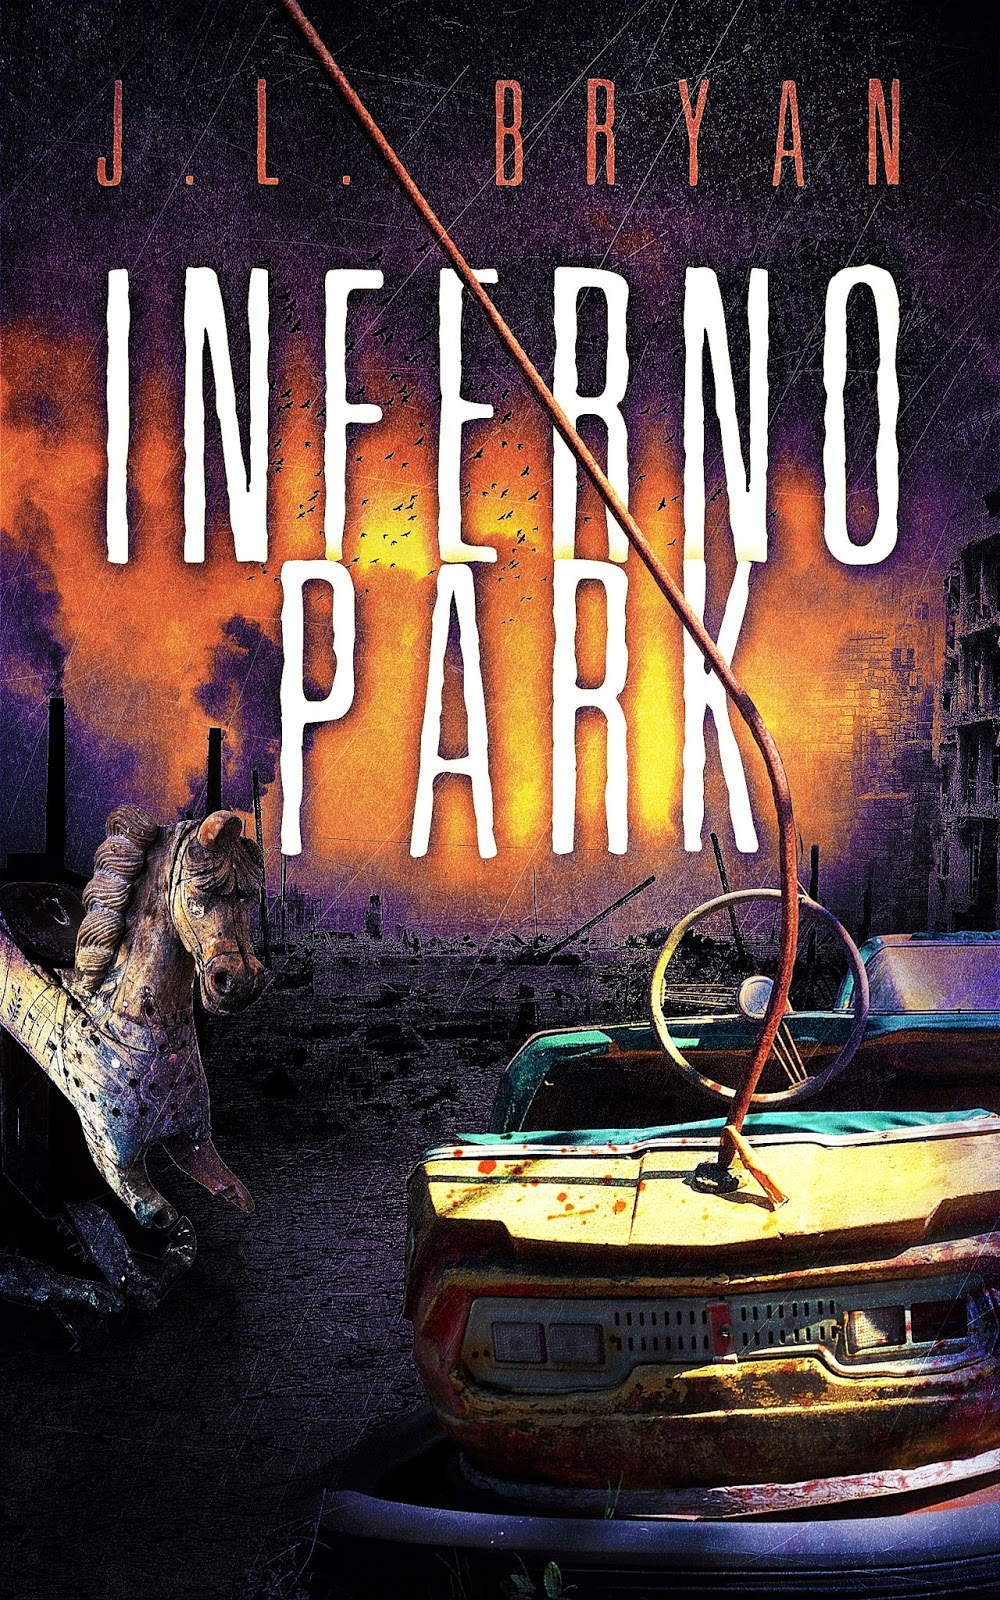 Cover For Inferno Park  An Amusement Park Horror Novel,ing Soon!